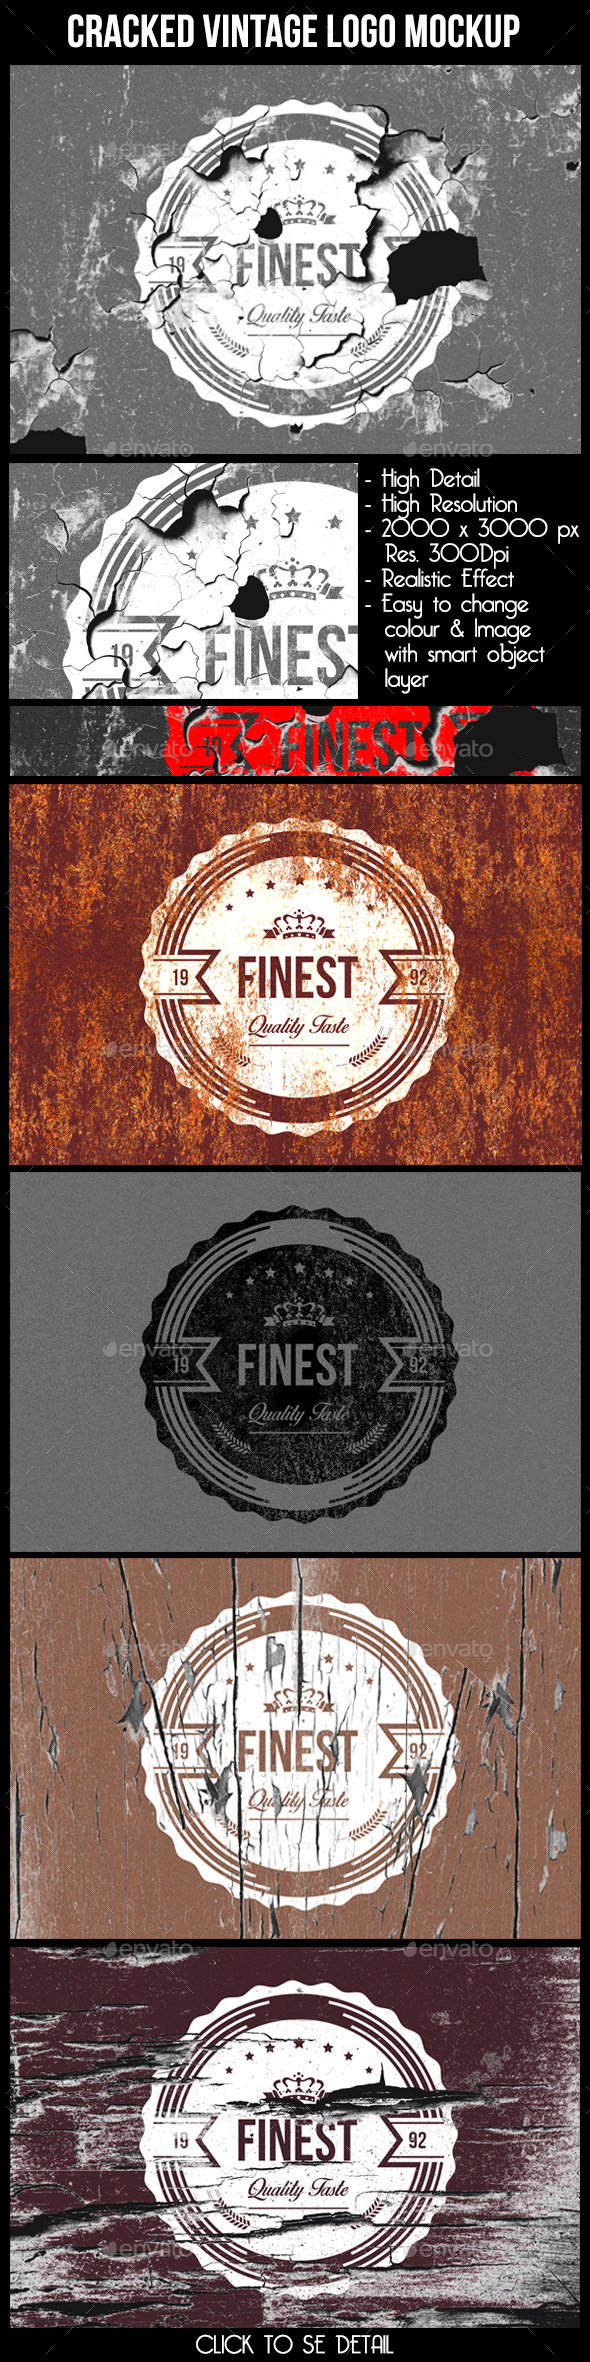 Cracked Vintage Logo Mock Up - Logo Product Mock-Ups